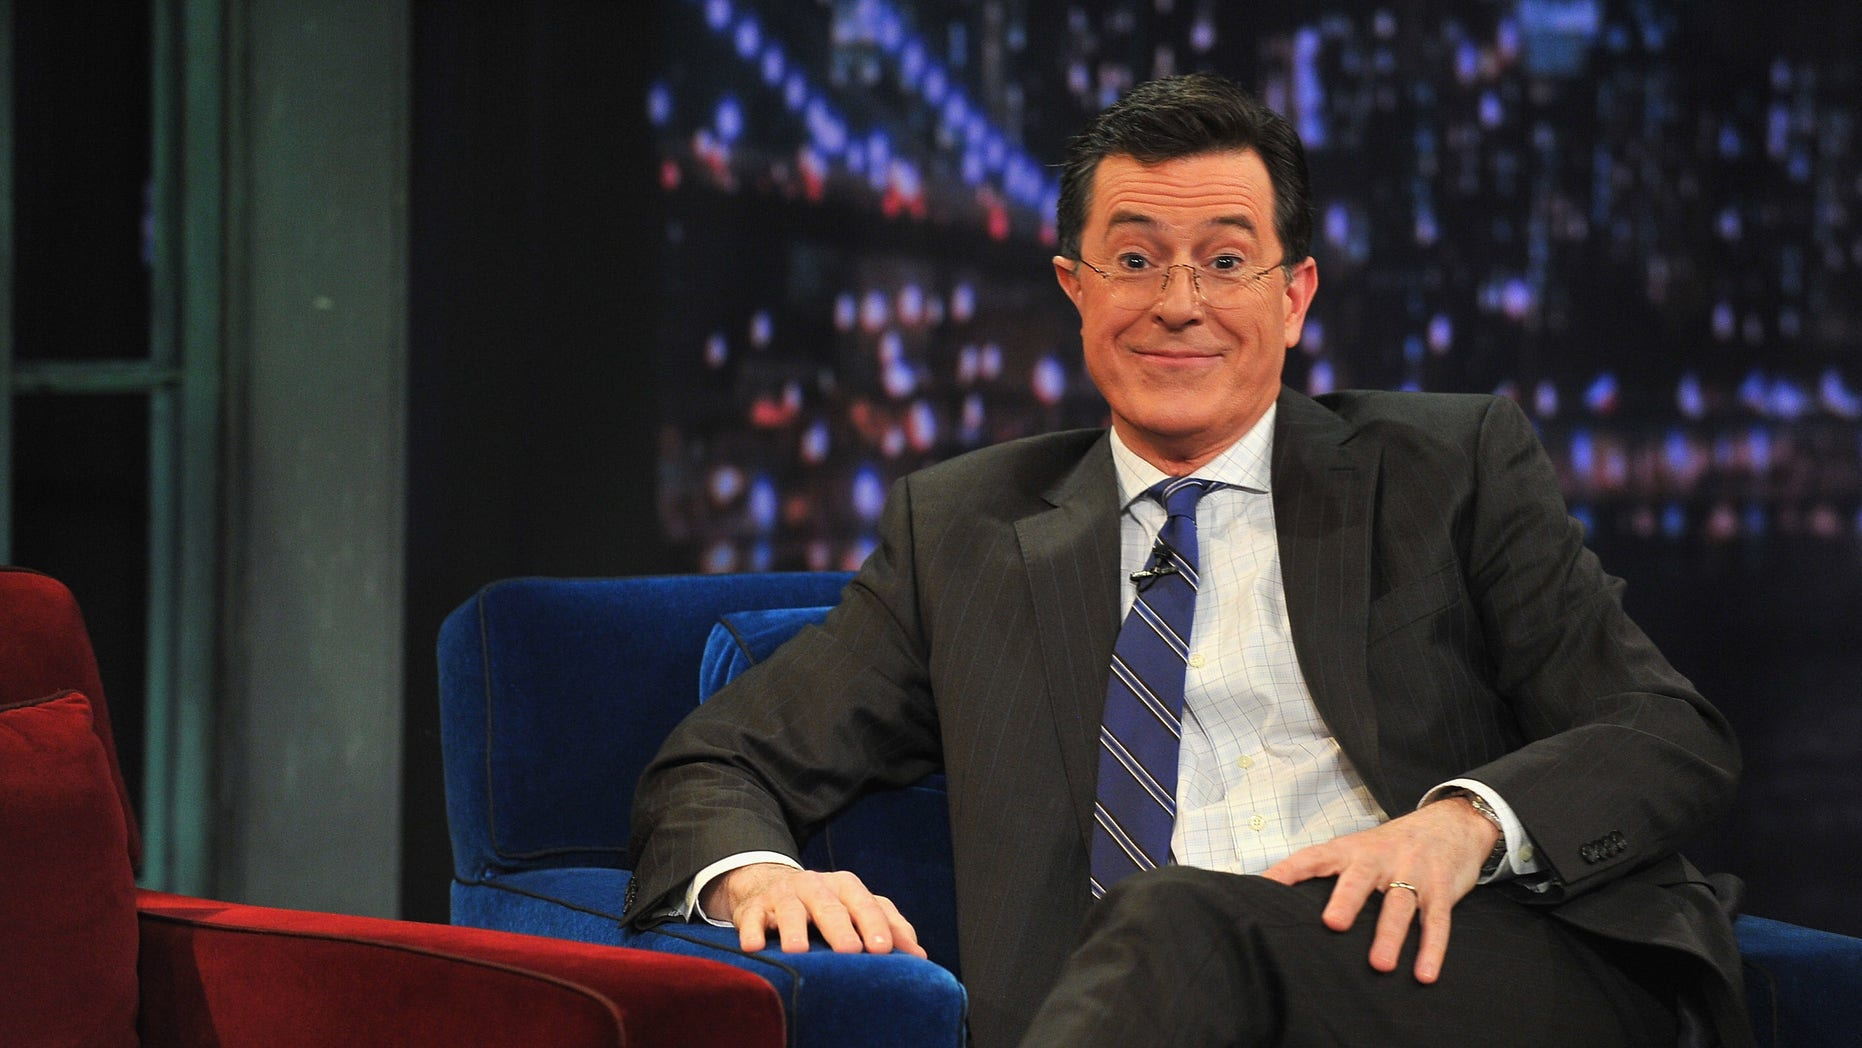 """Stephen Colbert visits """"Late Night With Jimmy Fallon"""" on February 21, 2013 in New York City."""